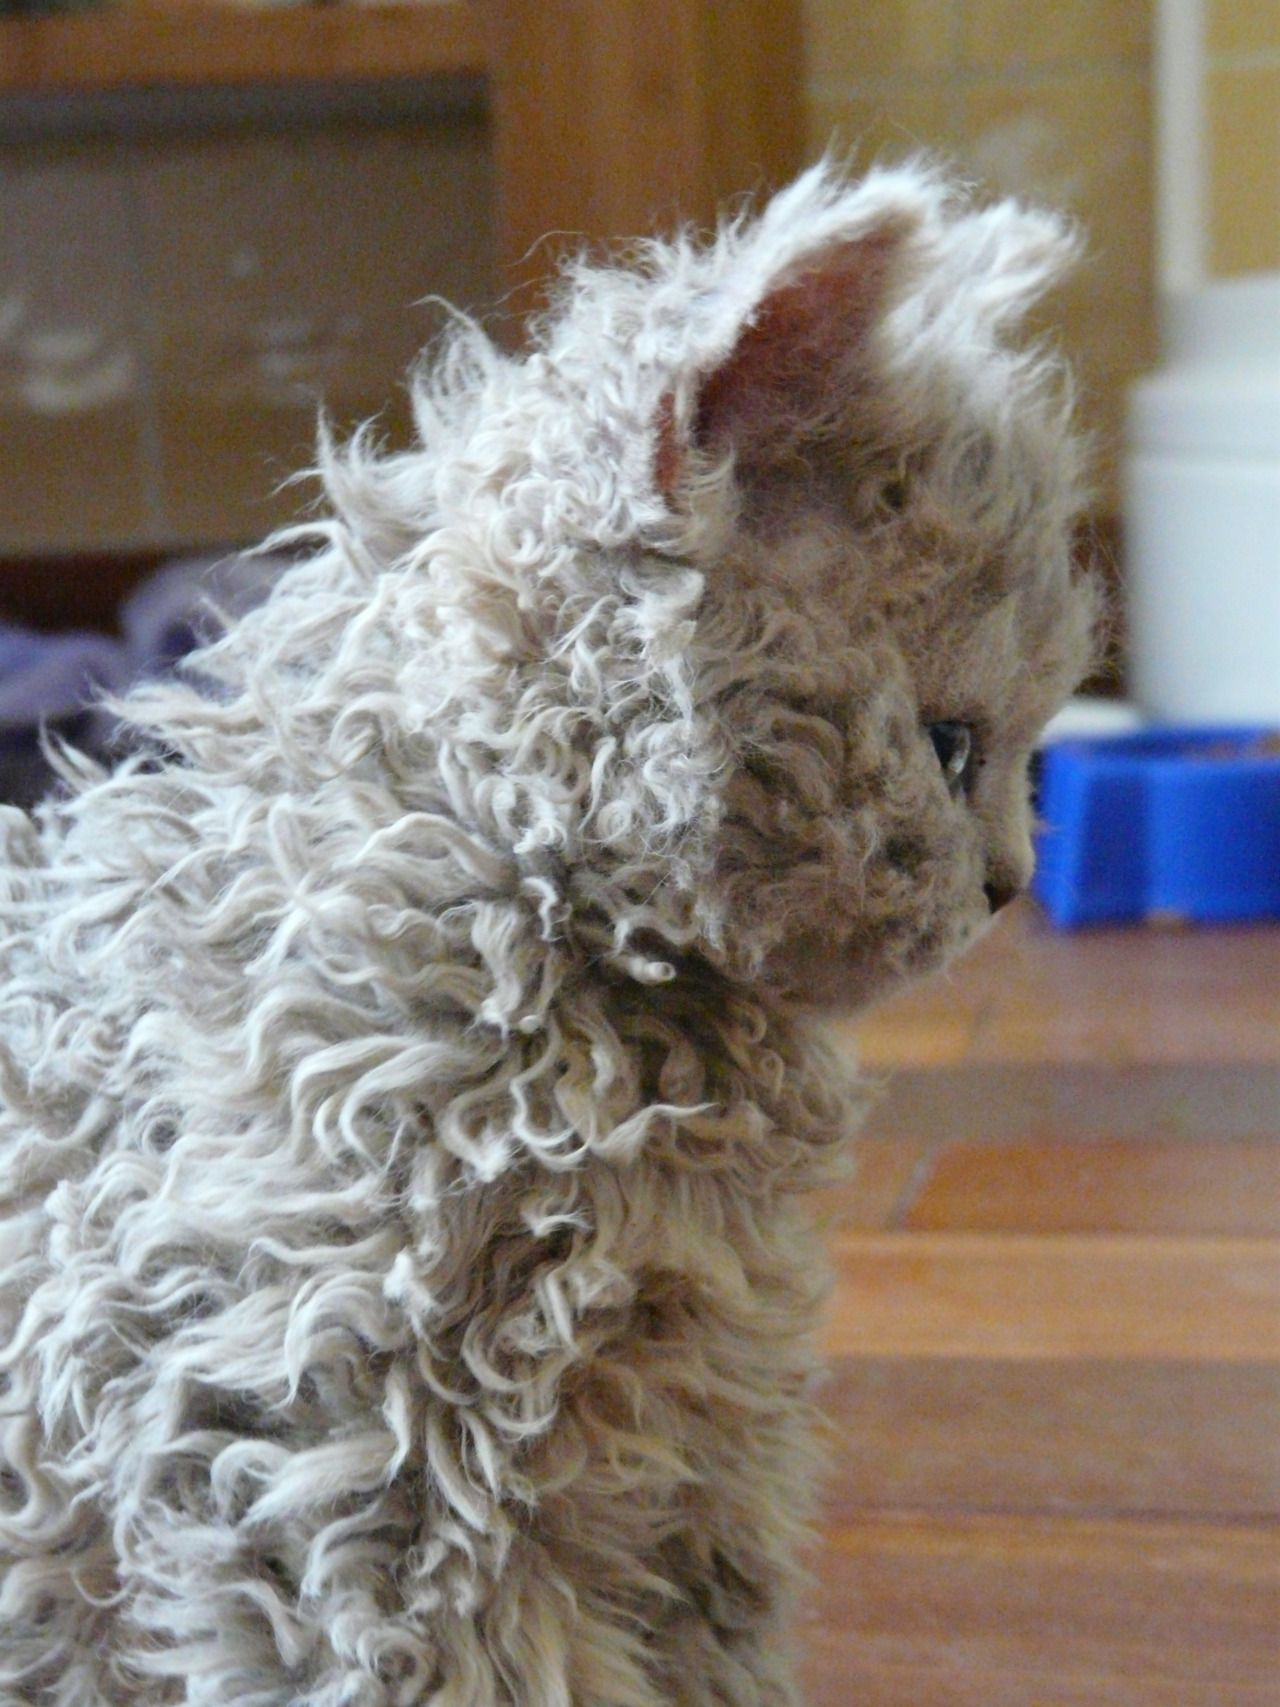 Http Cybergata Tumblr Com Post 22696235070 Elfie The Curly Cuteness Of Selkirk Rex Kittehs Cats Cute Animals Cat Breeds